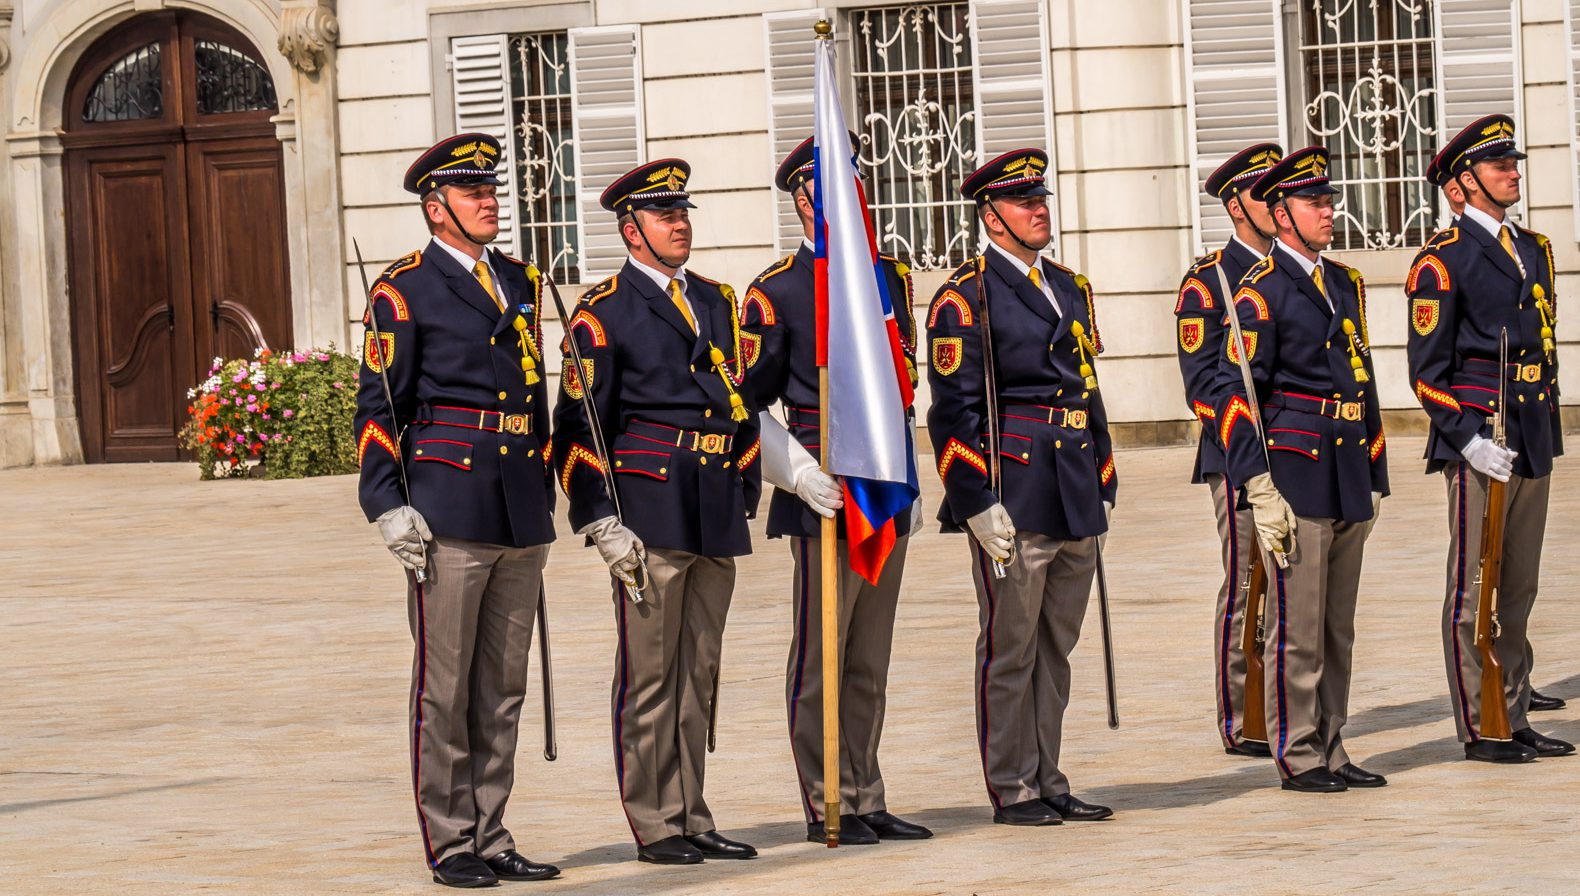 Bratislava: Changing of the guards at the presidential palace